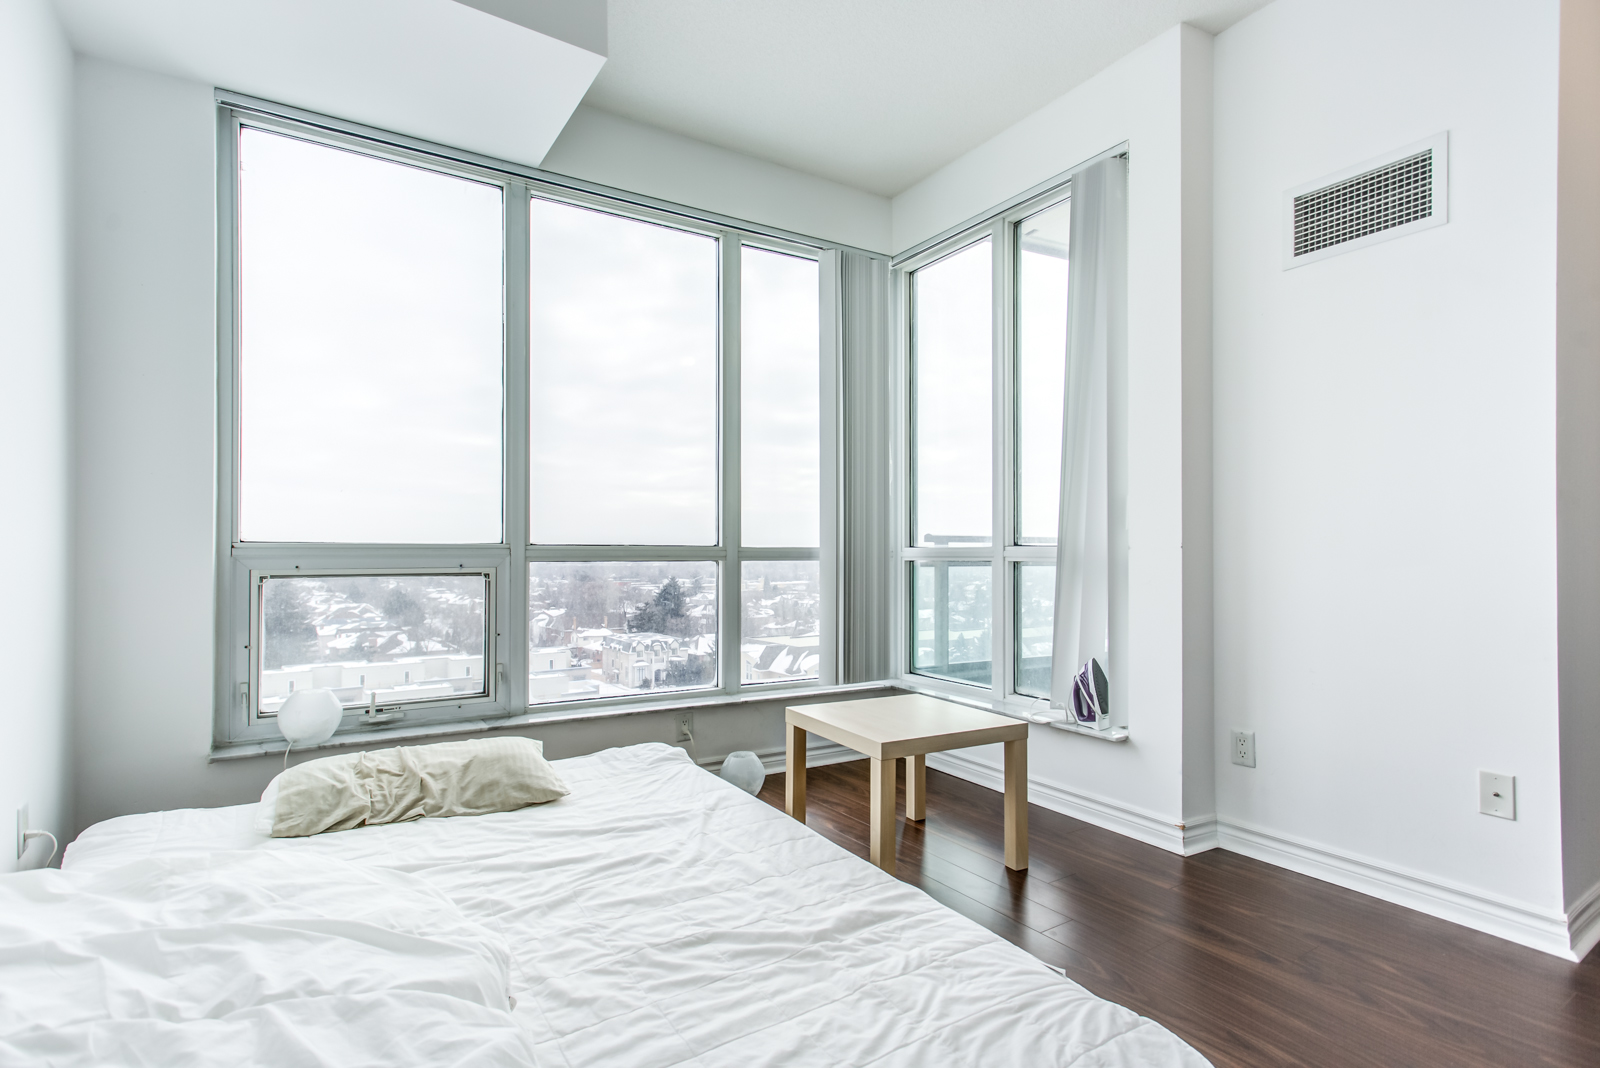 Master bedroom and windows